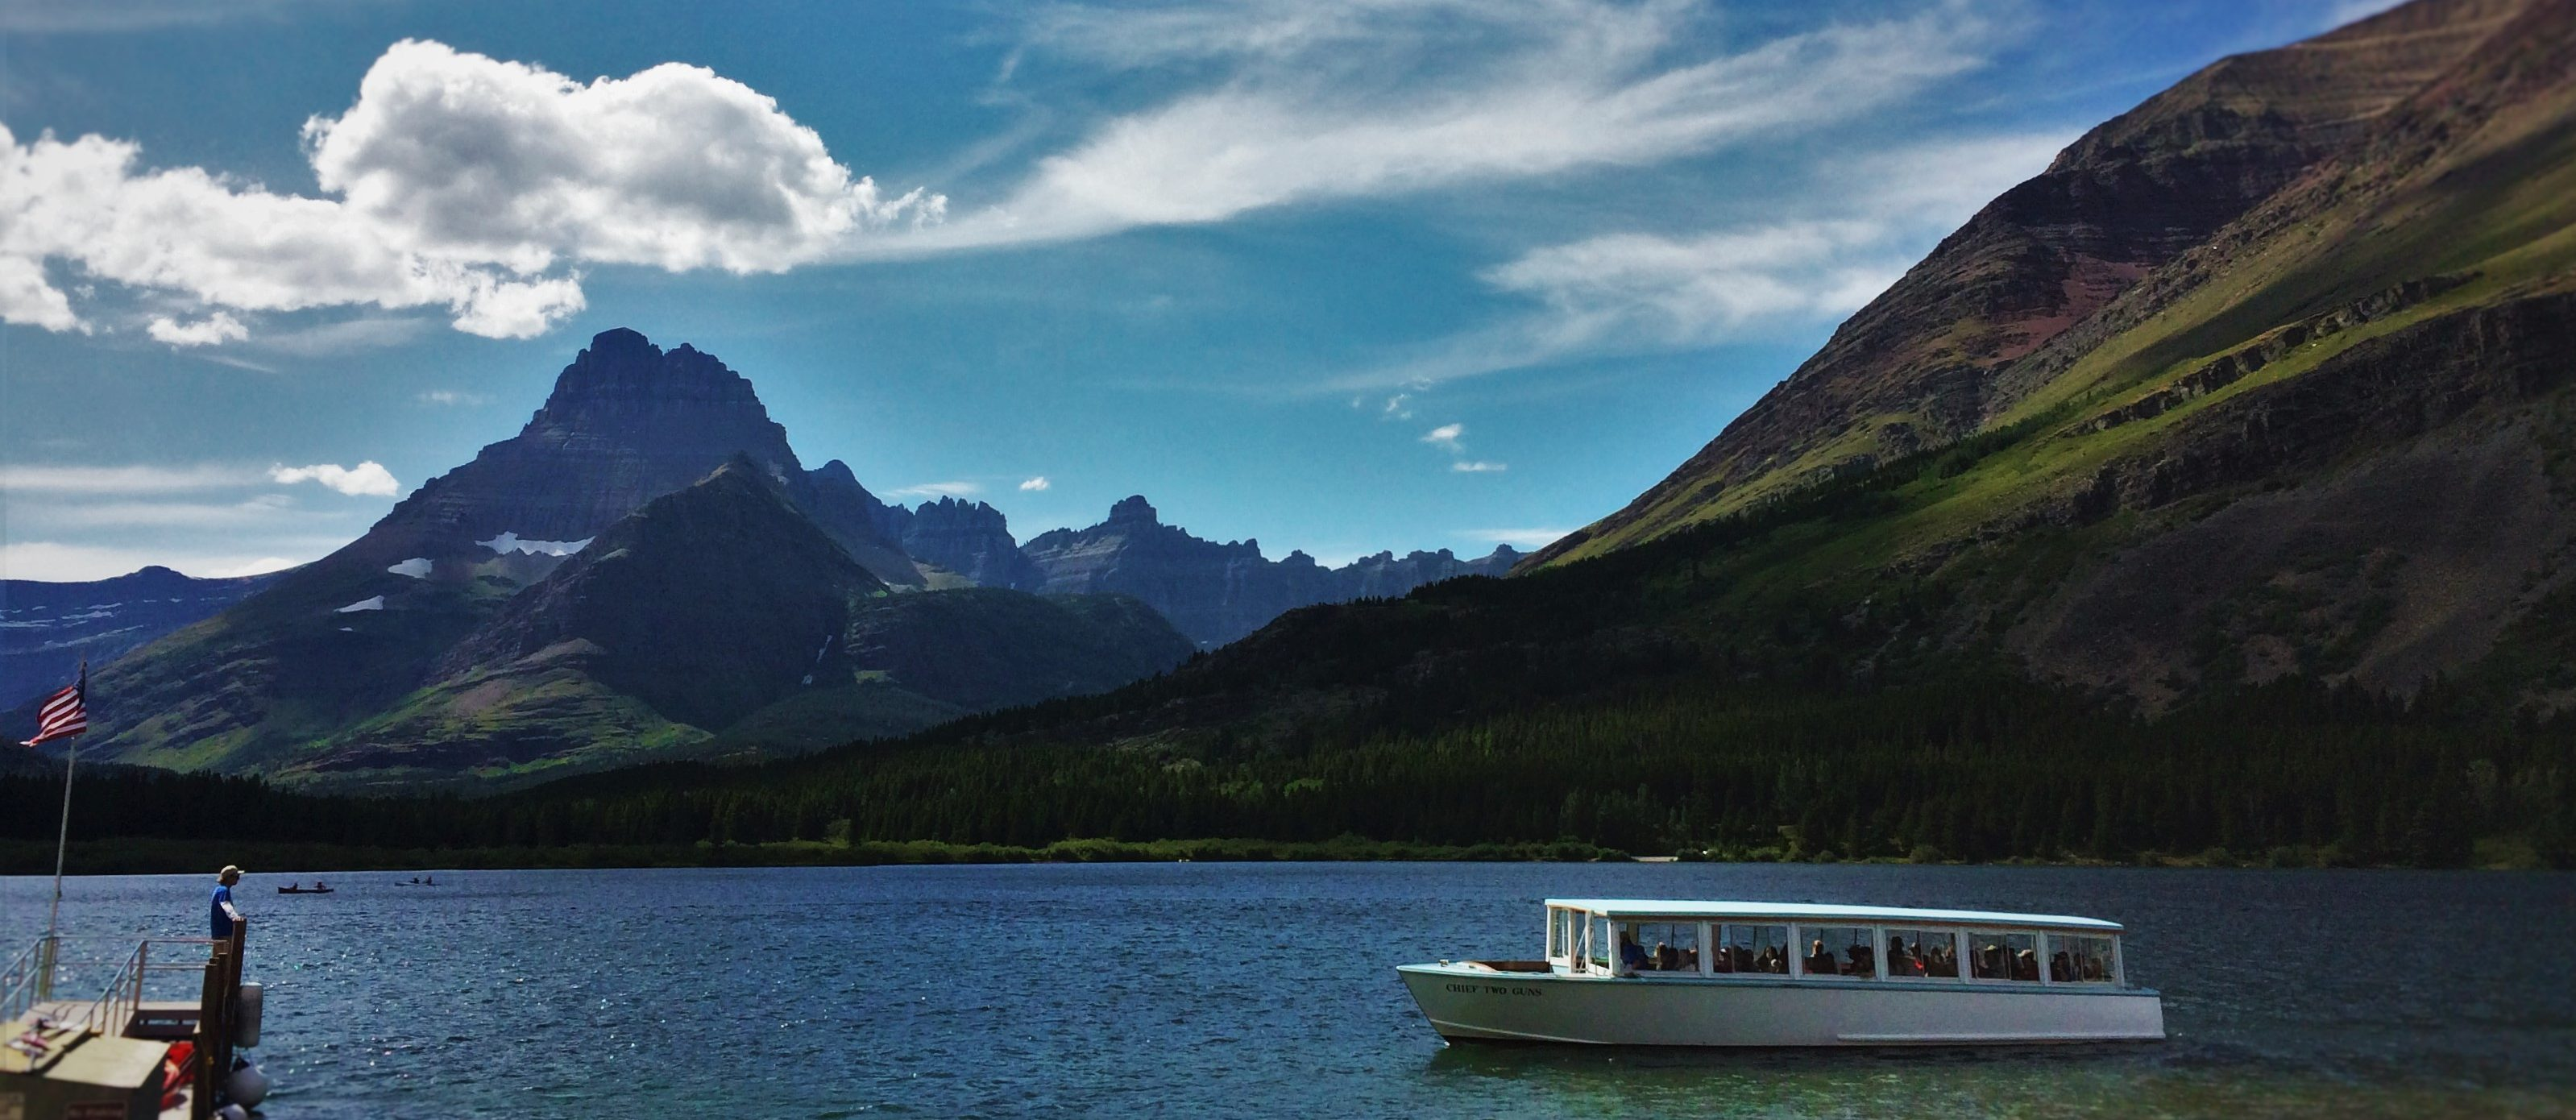 Glacier Park Boat Co on Swiftcurrent Lake in Glacier National Park 4